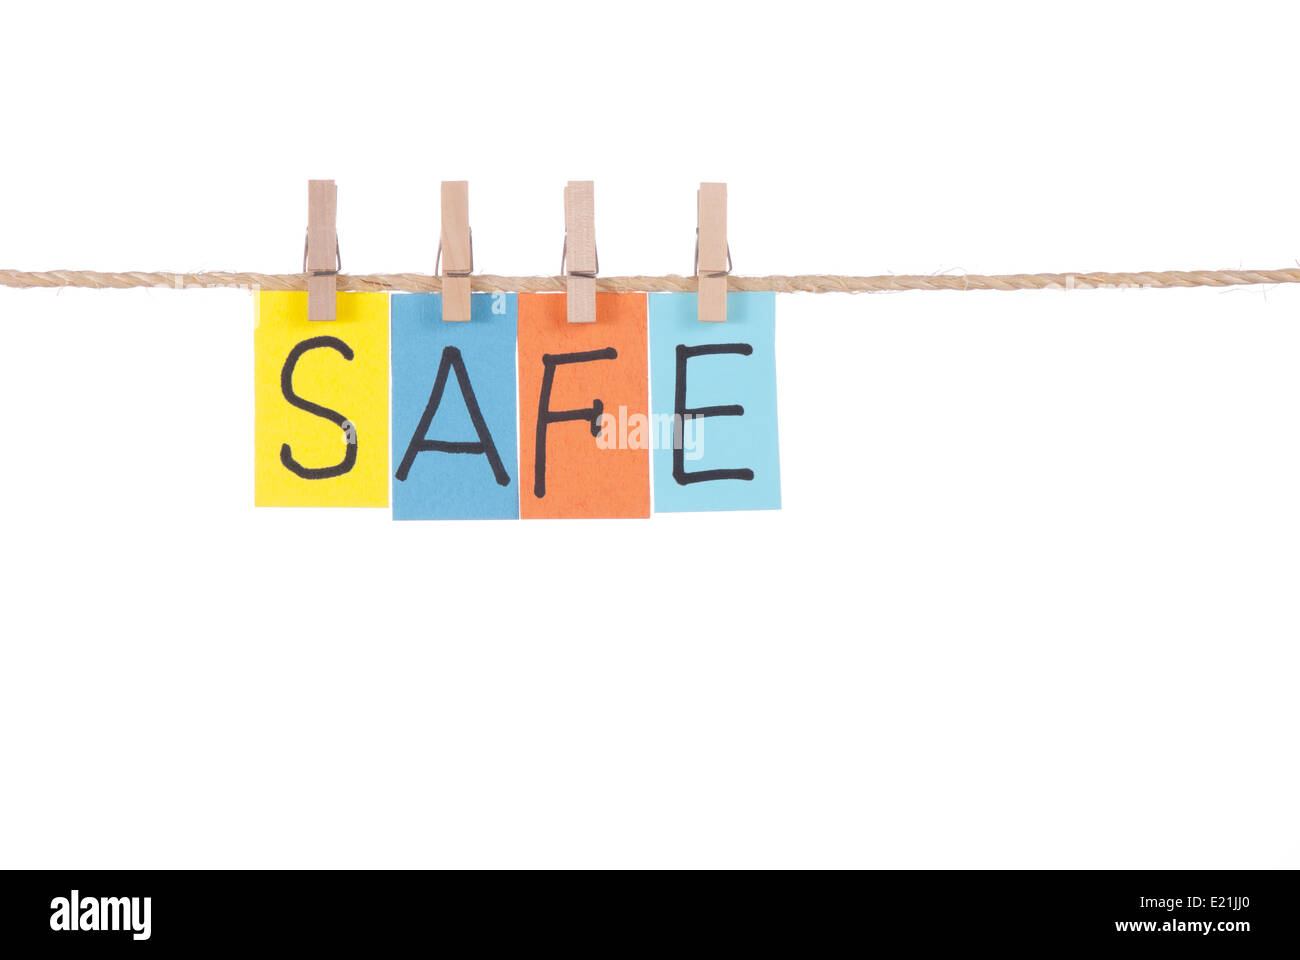 Safe, Wooden peg  and colorful words - Stock Image